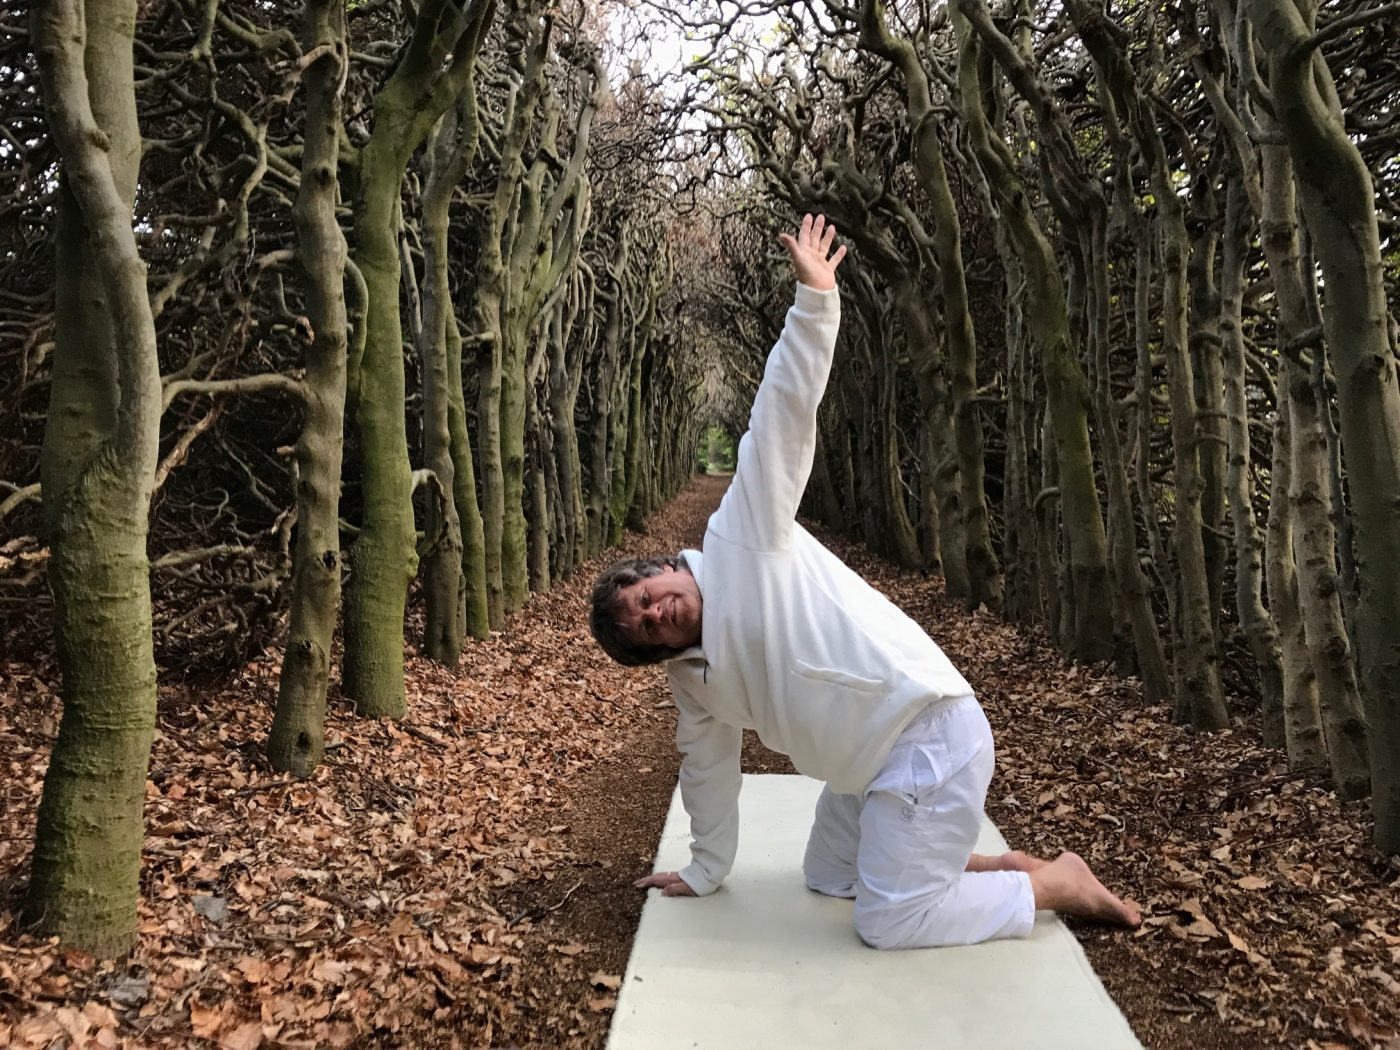 nek yoga deventer